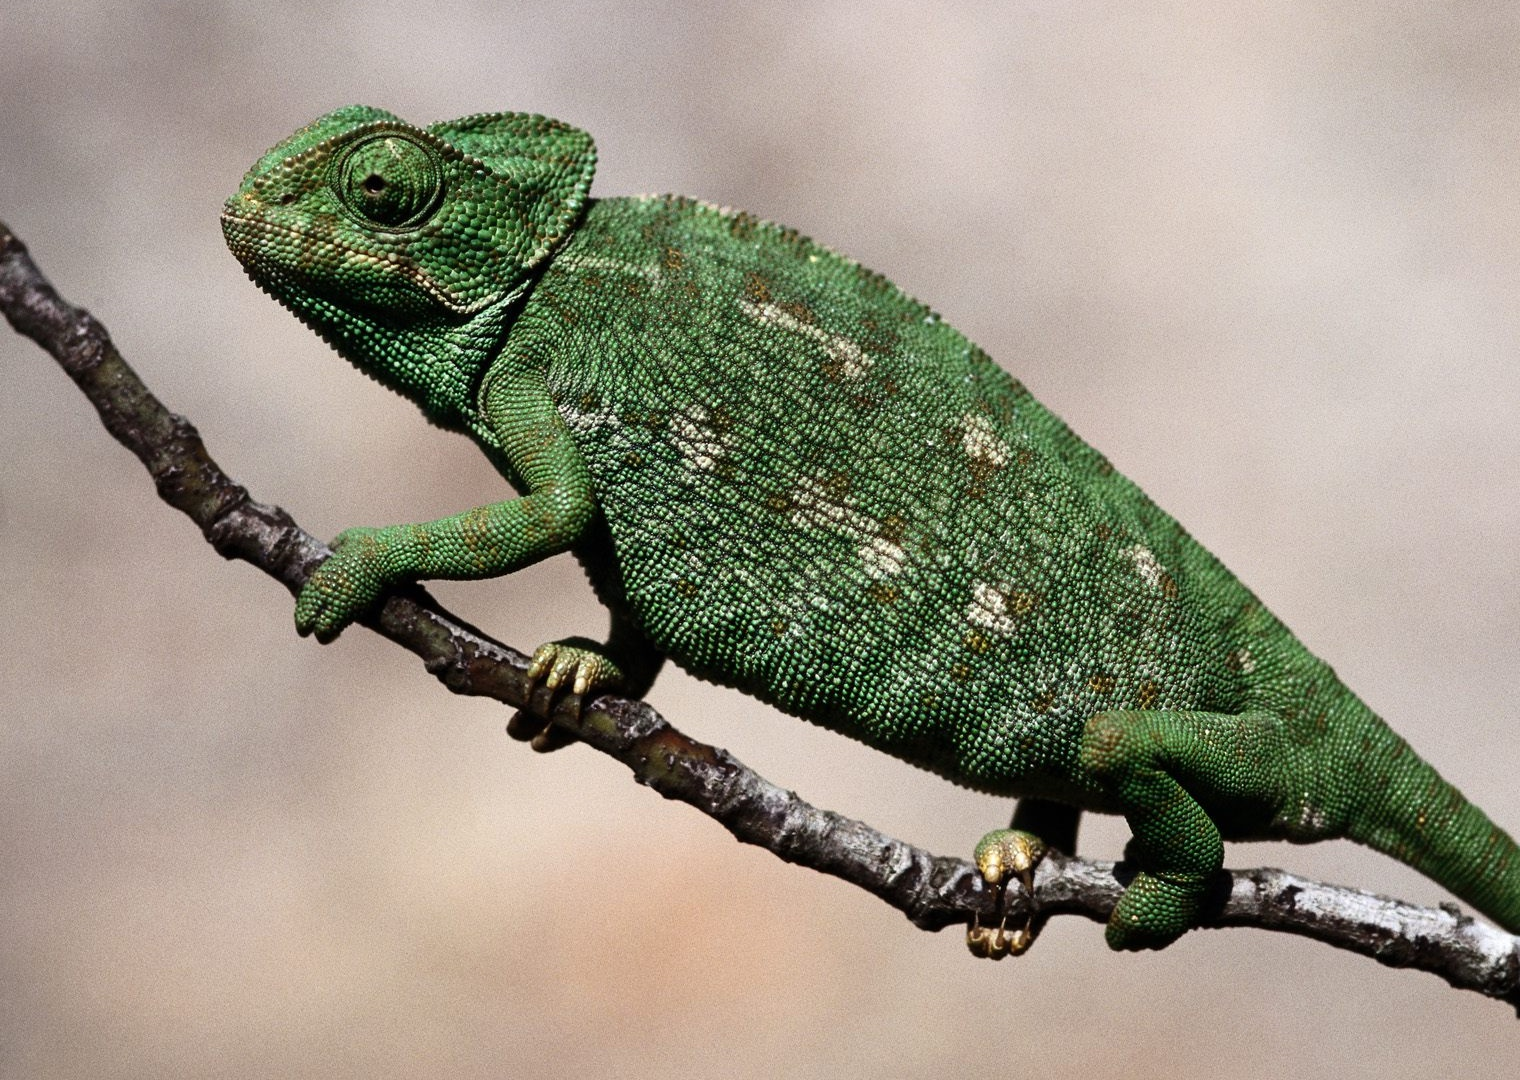 Chameleon | The Biggest Animals Kingdom